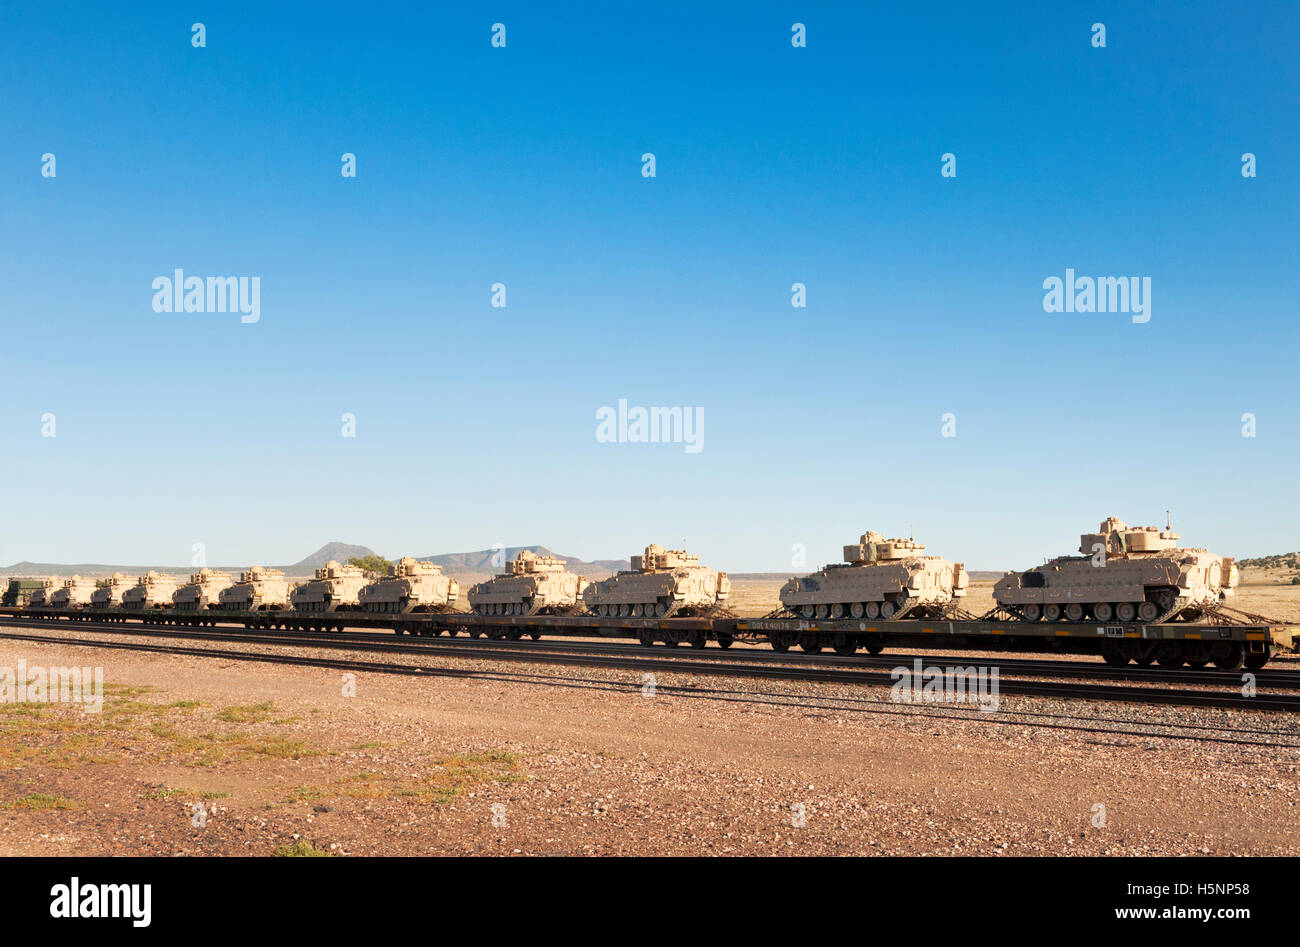 Military Armored Tank Vehicles on a Train in Northern Arizona - Stock Image